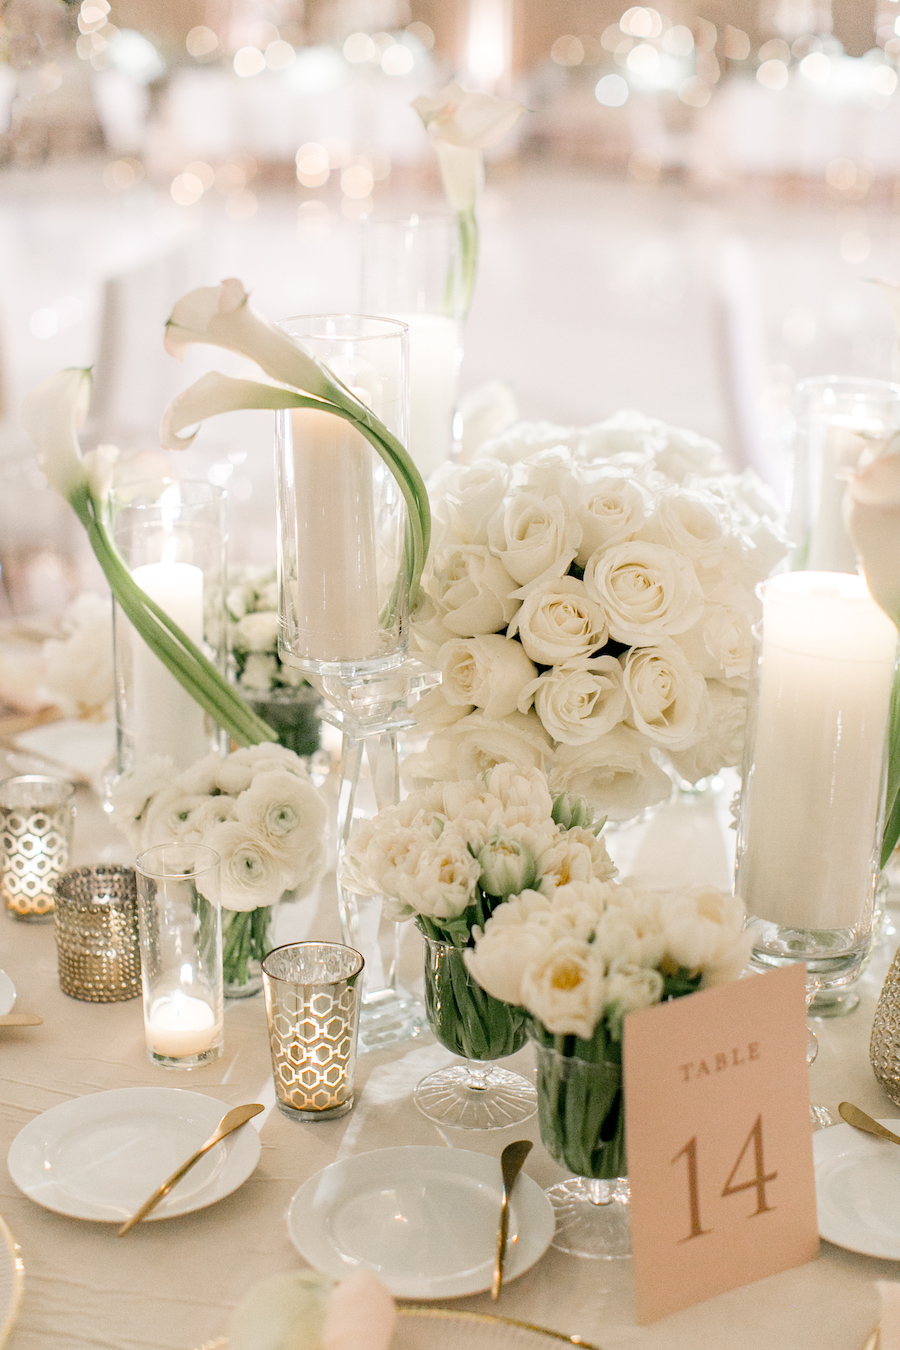 floral centerpiece details at wedding reception